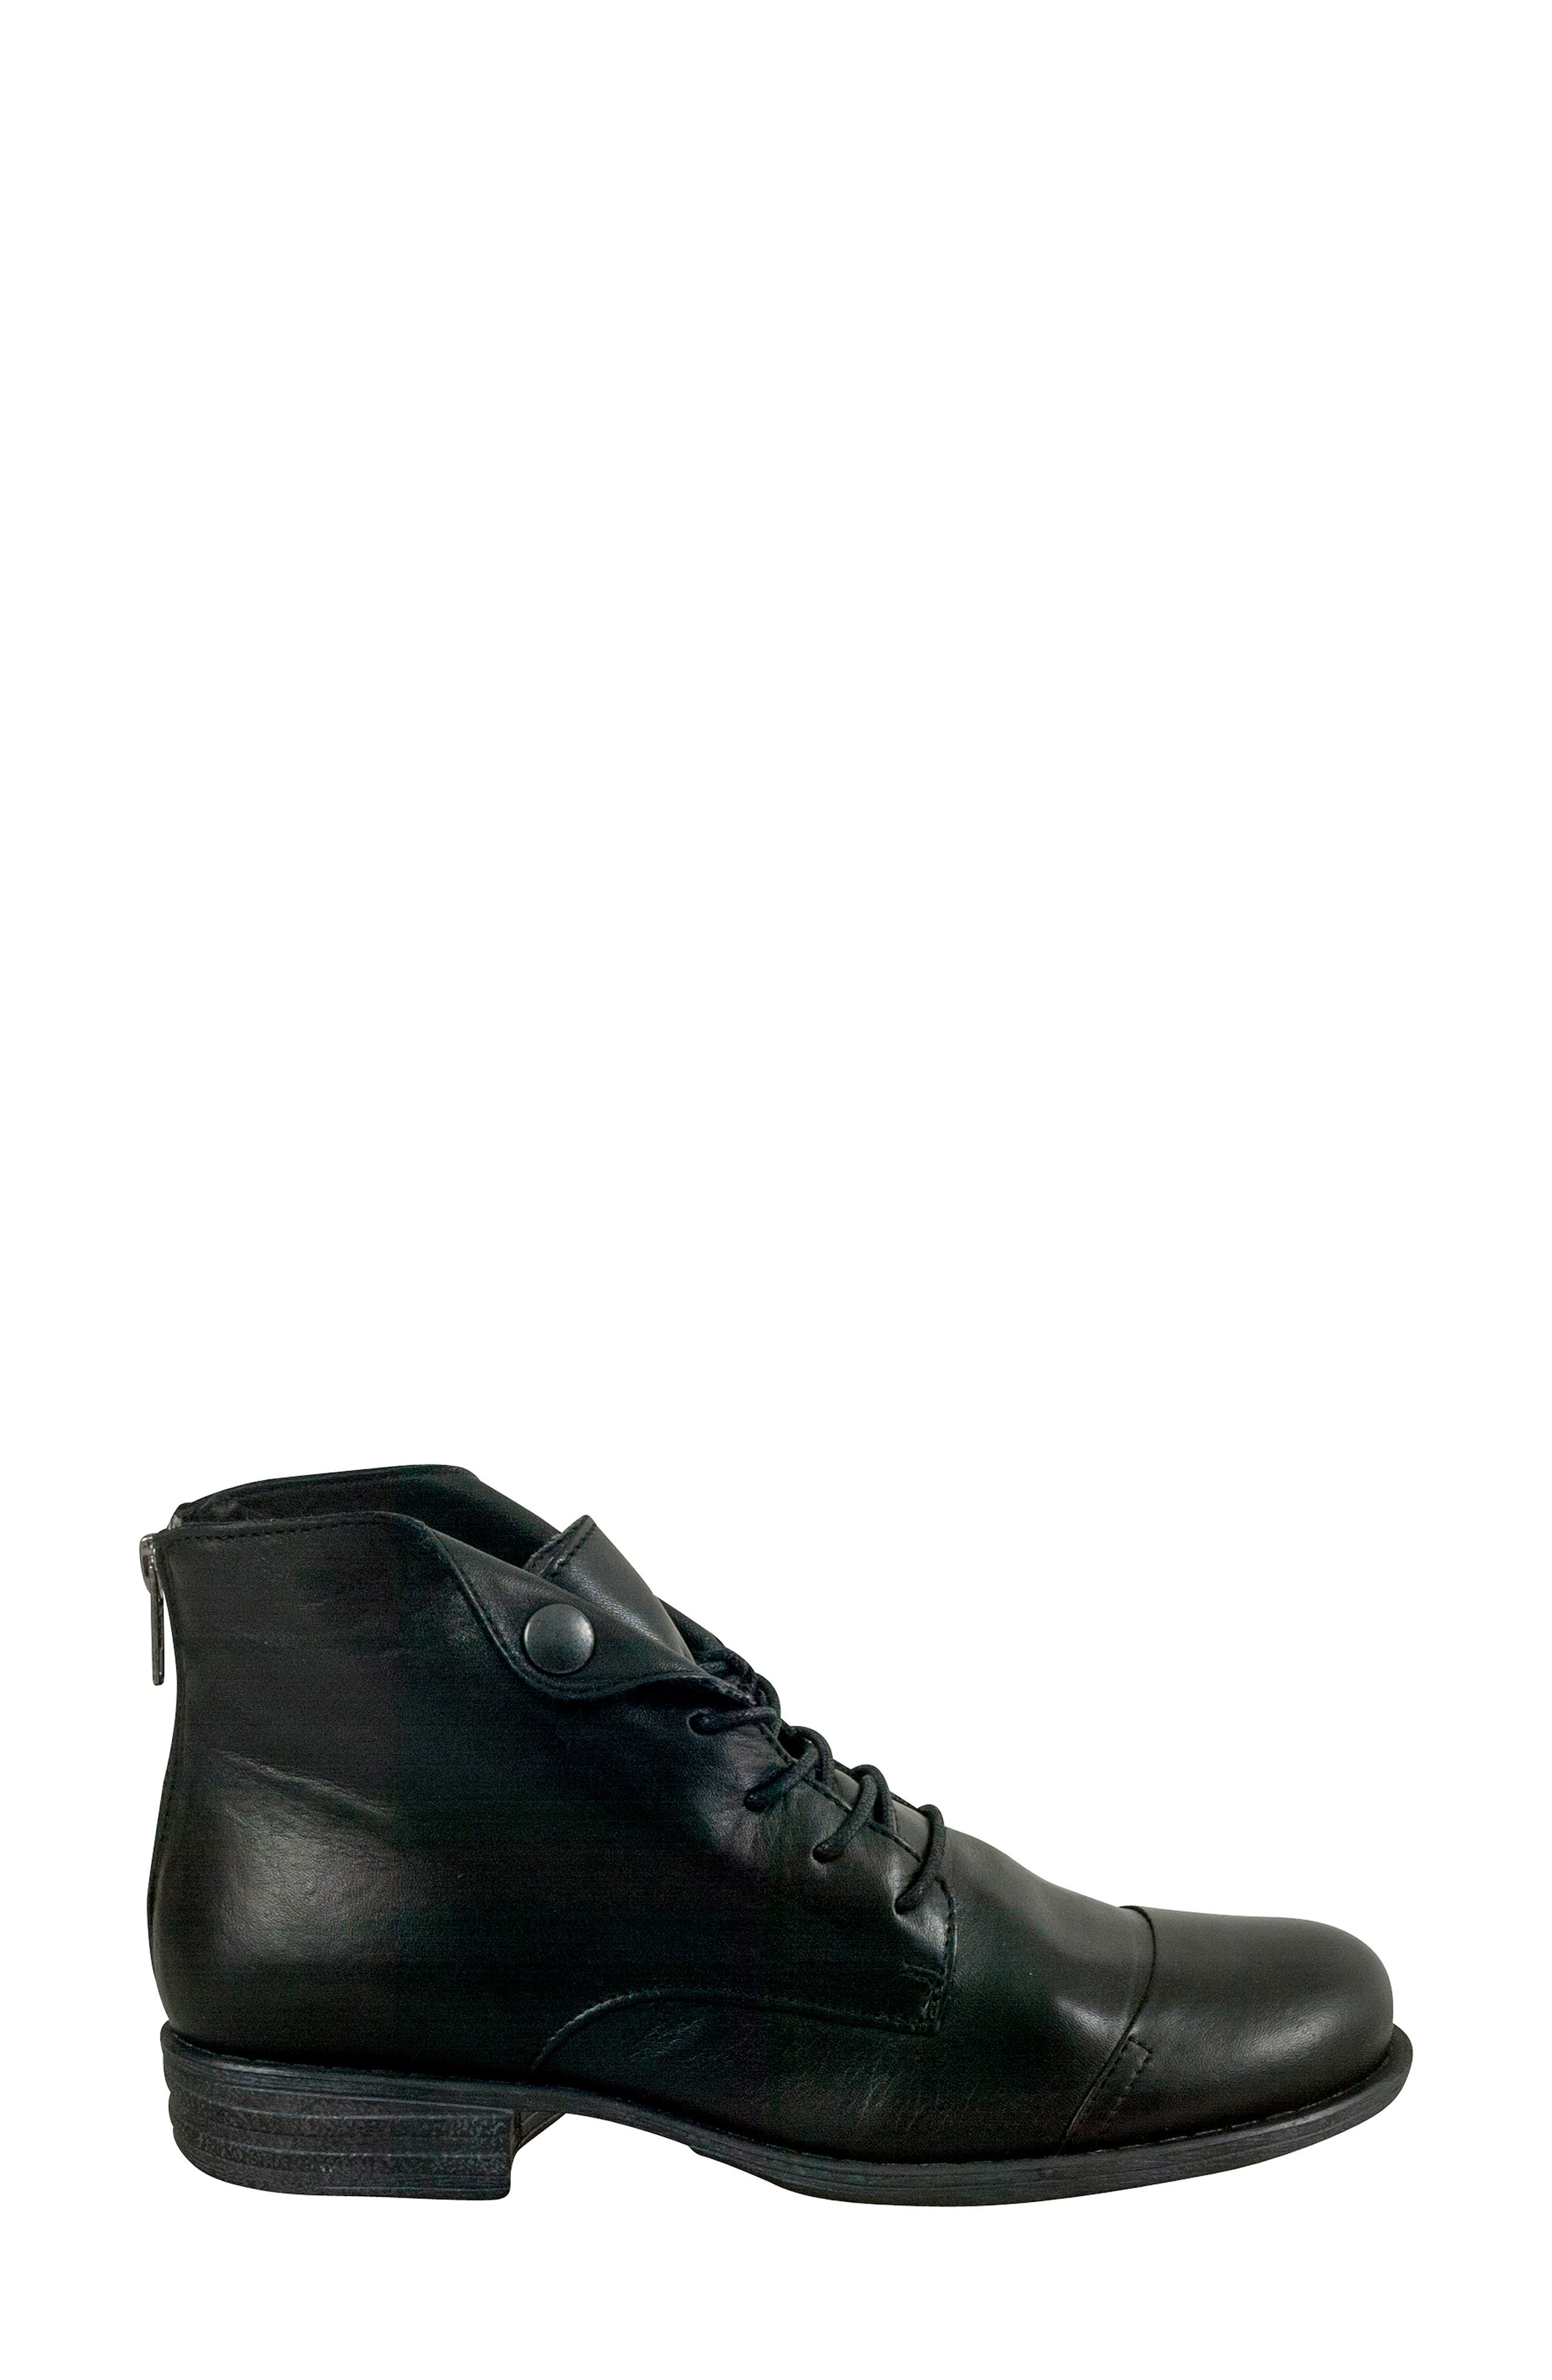 Lennox Lace-Up Bootie,                             Alternate thumbnail 3, color,                             001